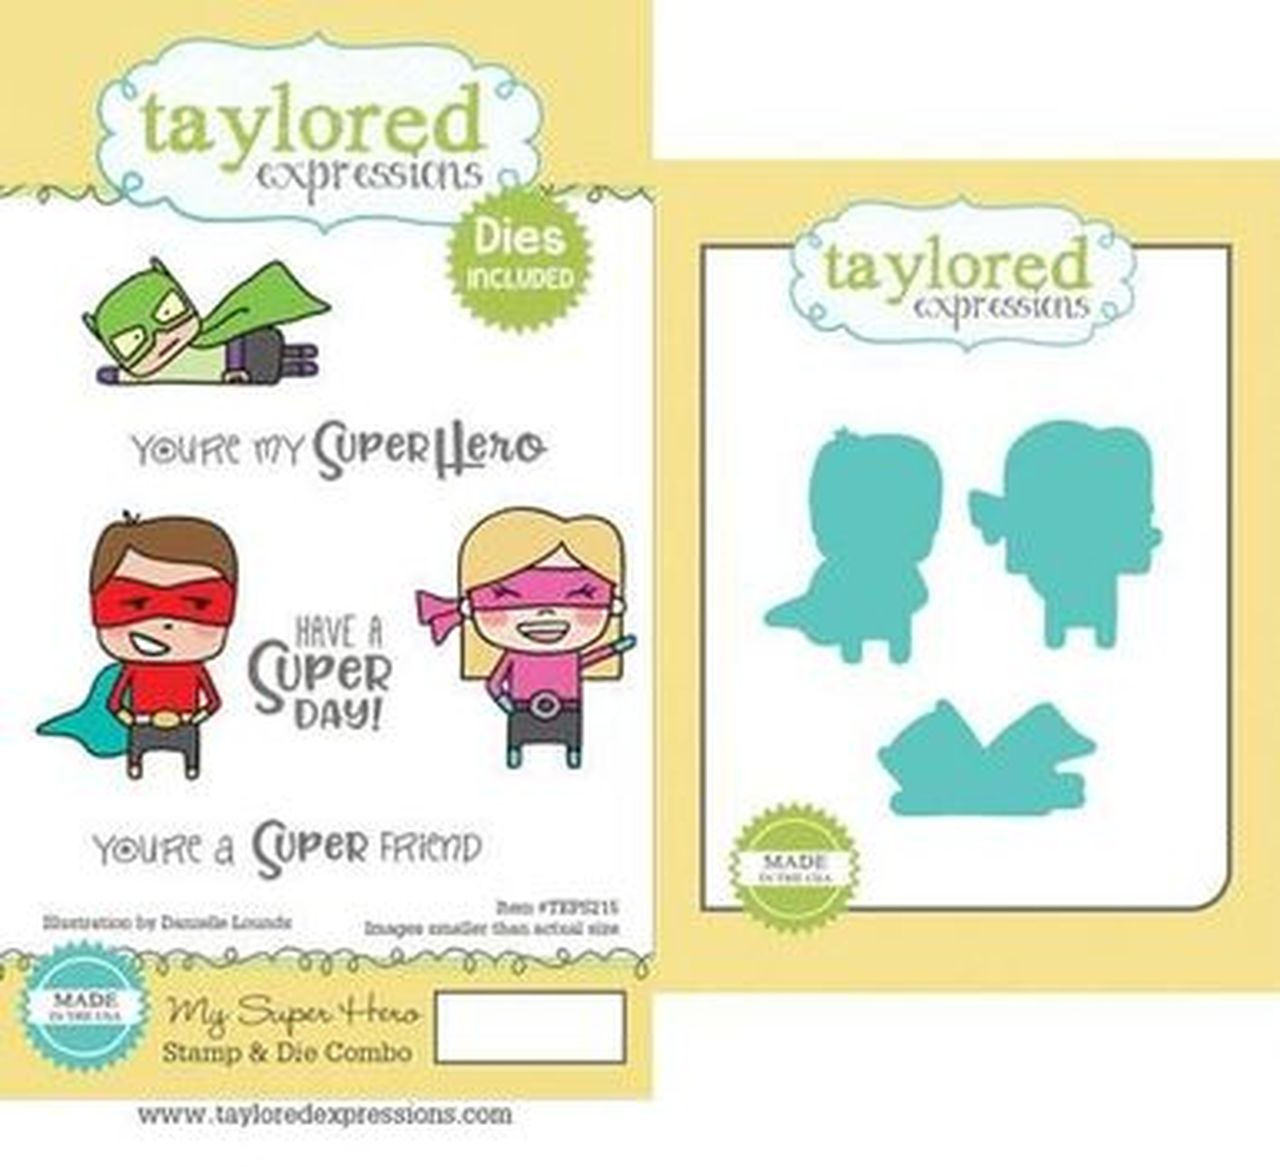 Taylored Expressions - My Super Hero Stamp & Die Combo